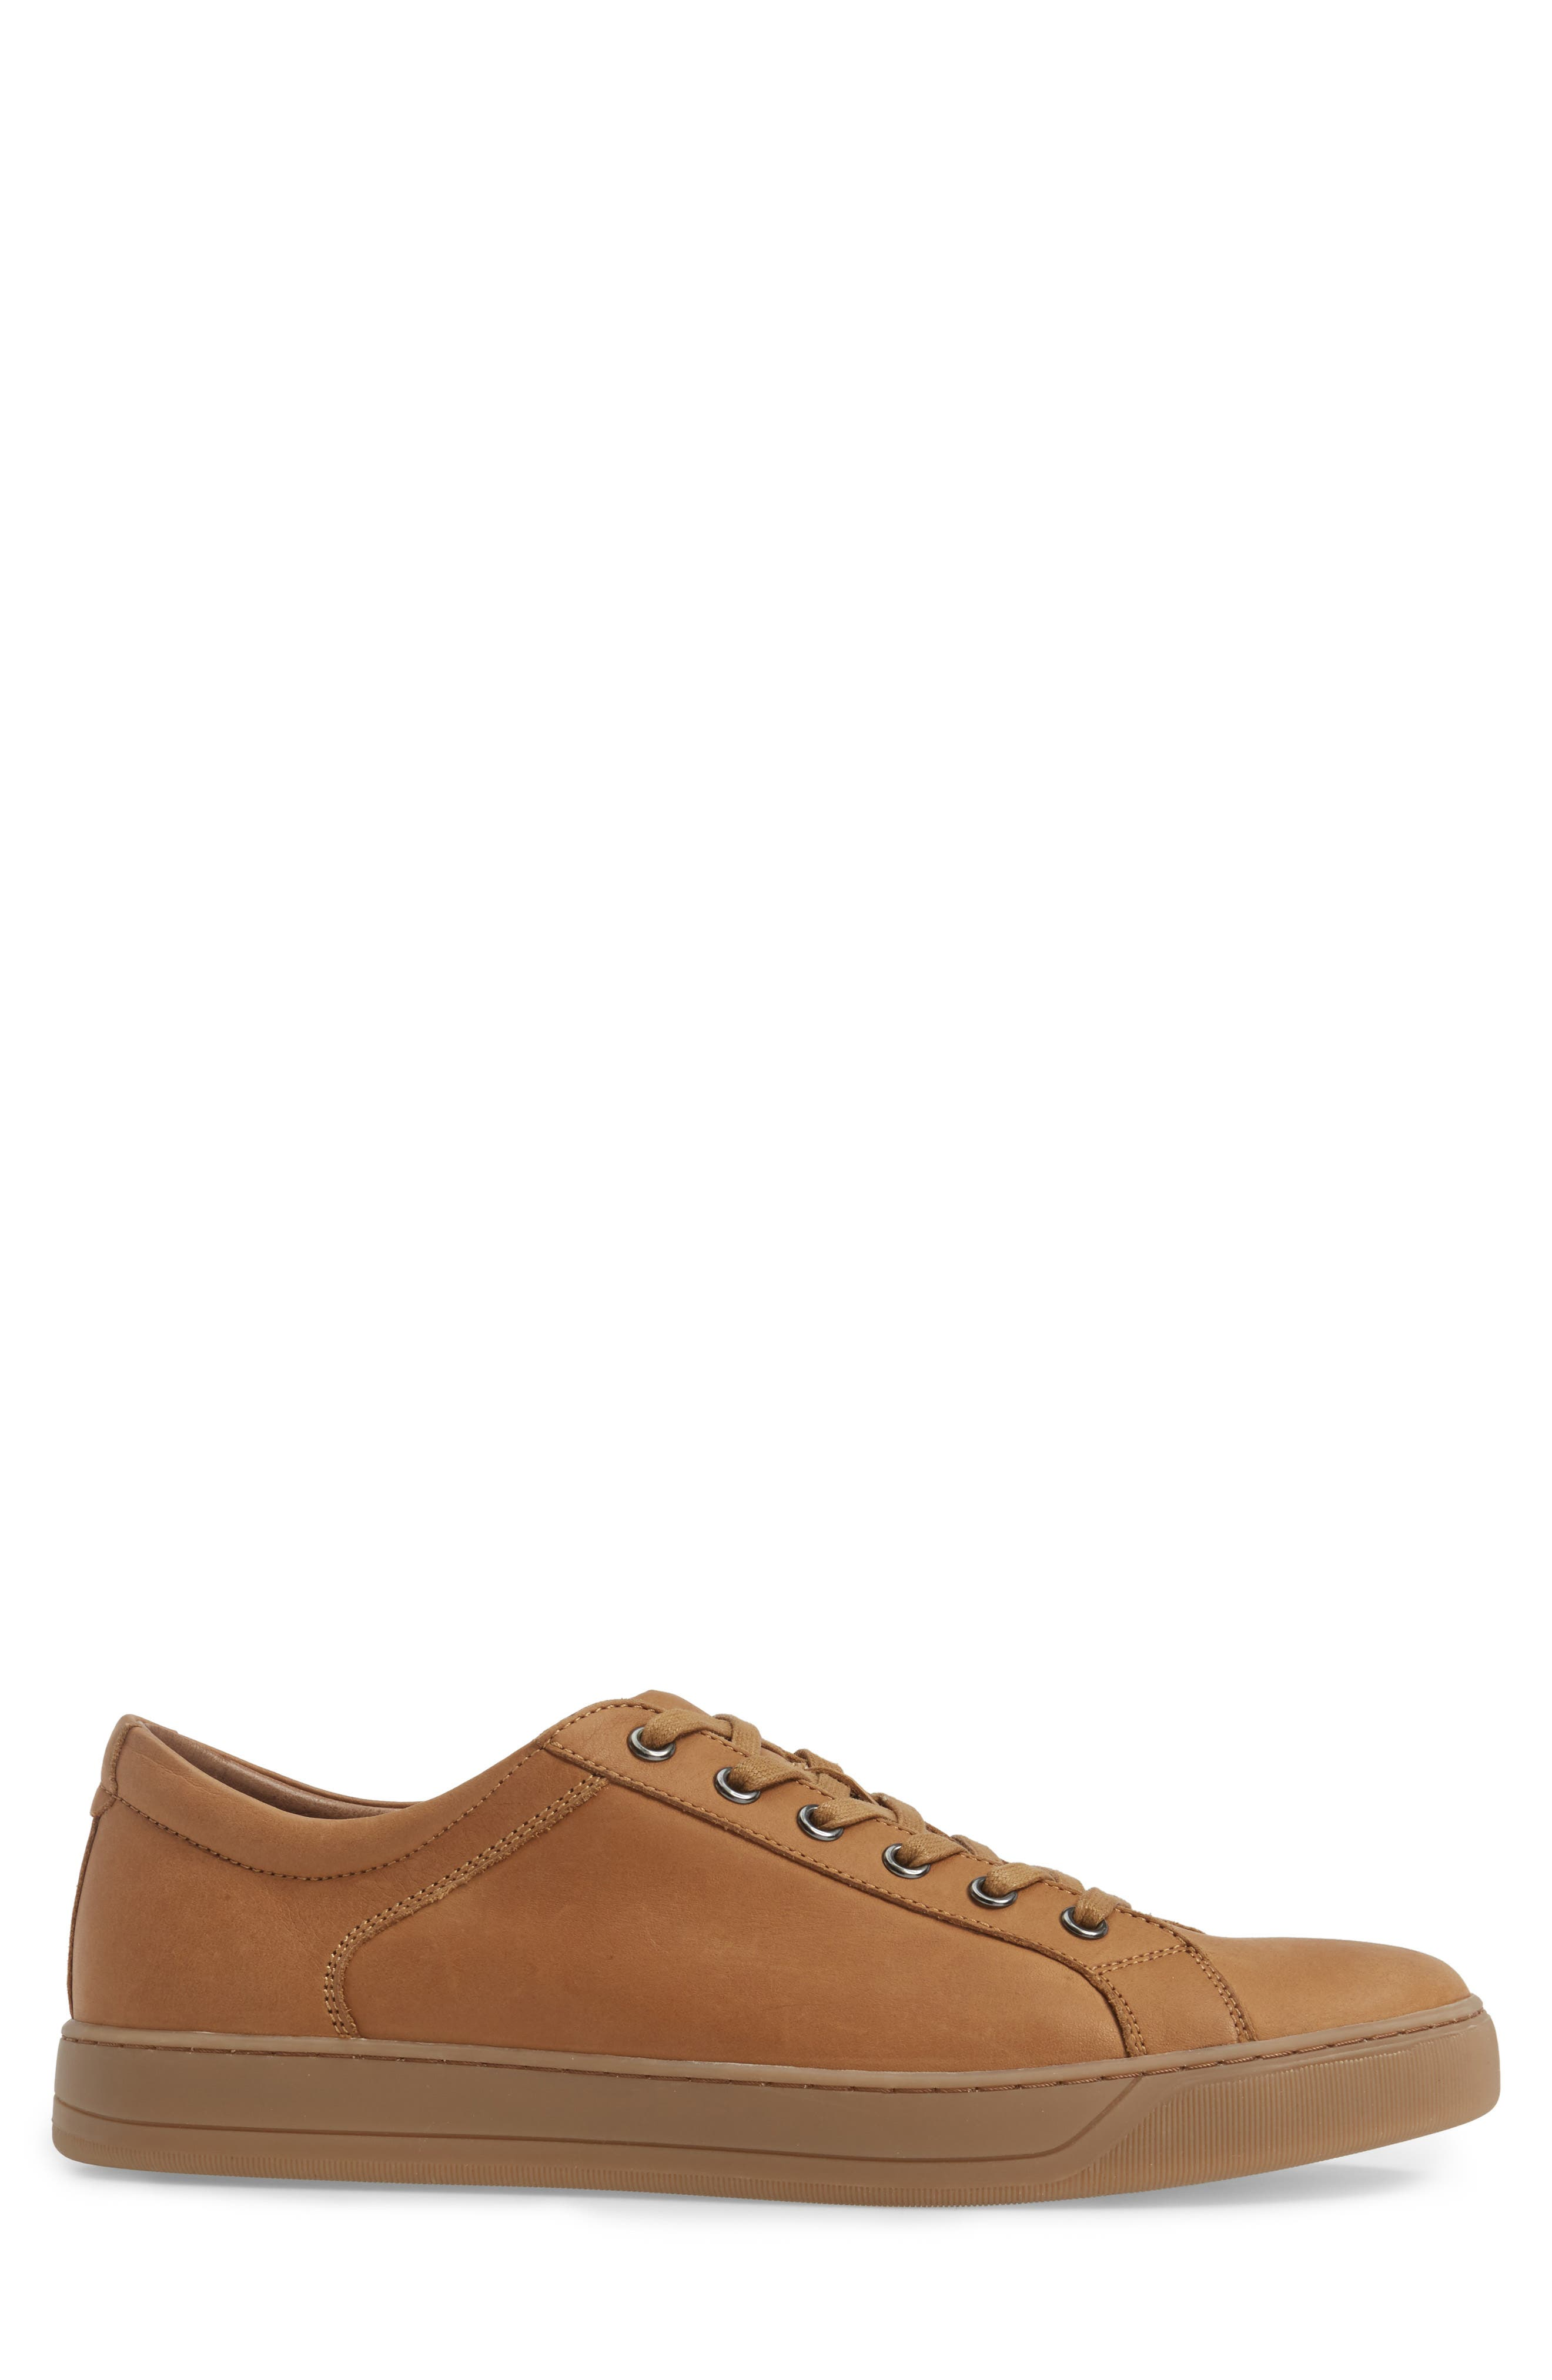 Allister Sneaker,                             Alternate thumbnail 3, color,                             Natural Leather